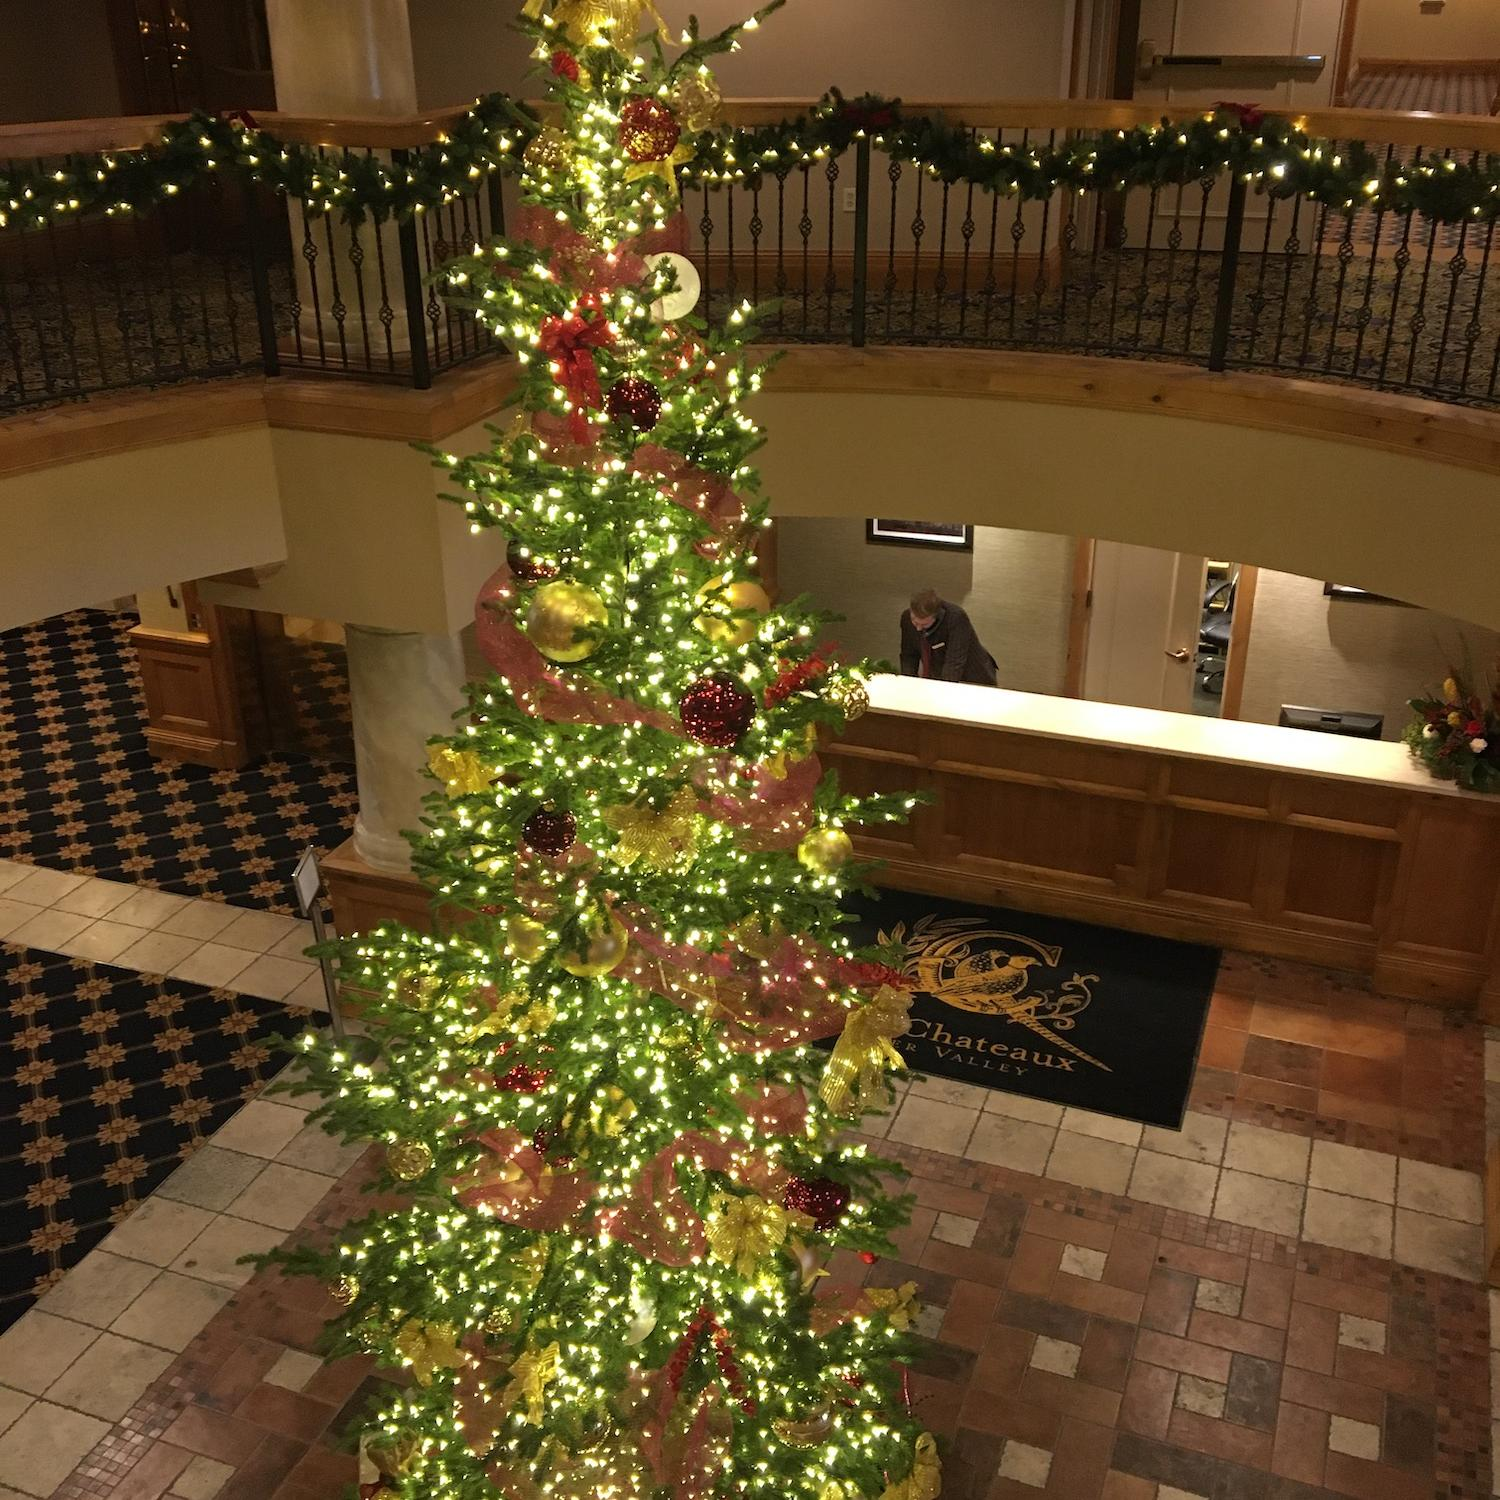 The Chateaux Christmas tree